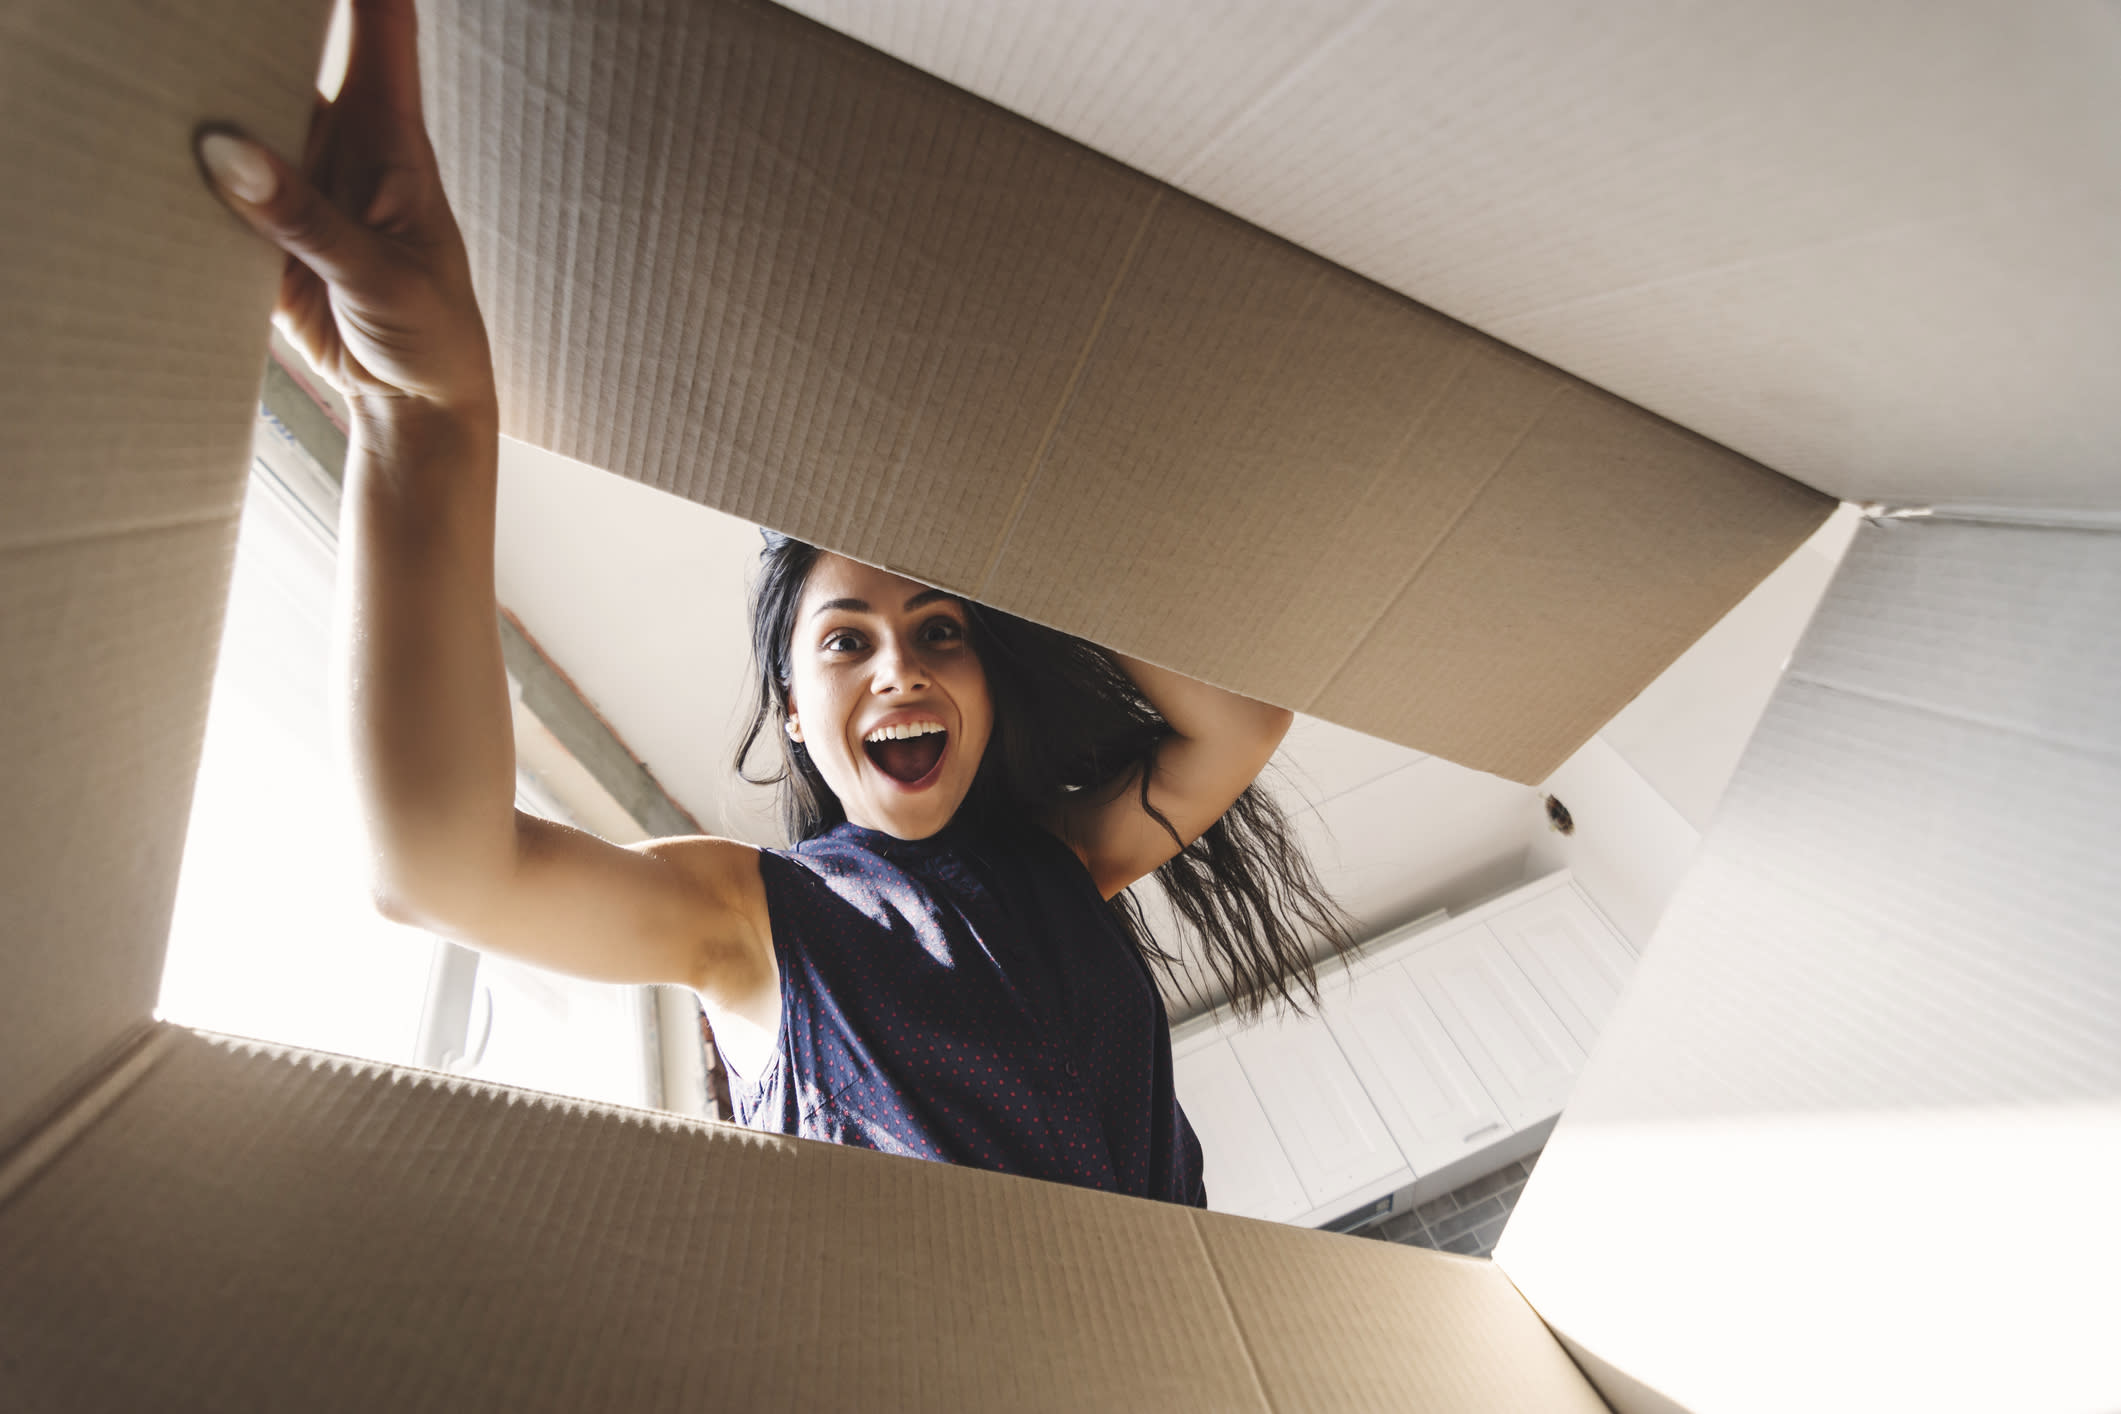 Smiling woman opening a cardboard box